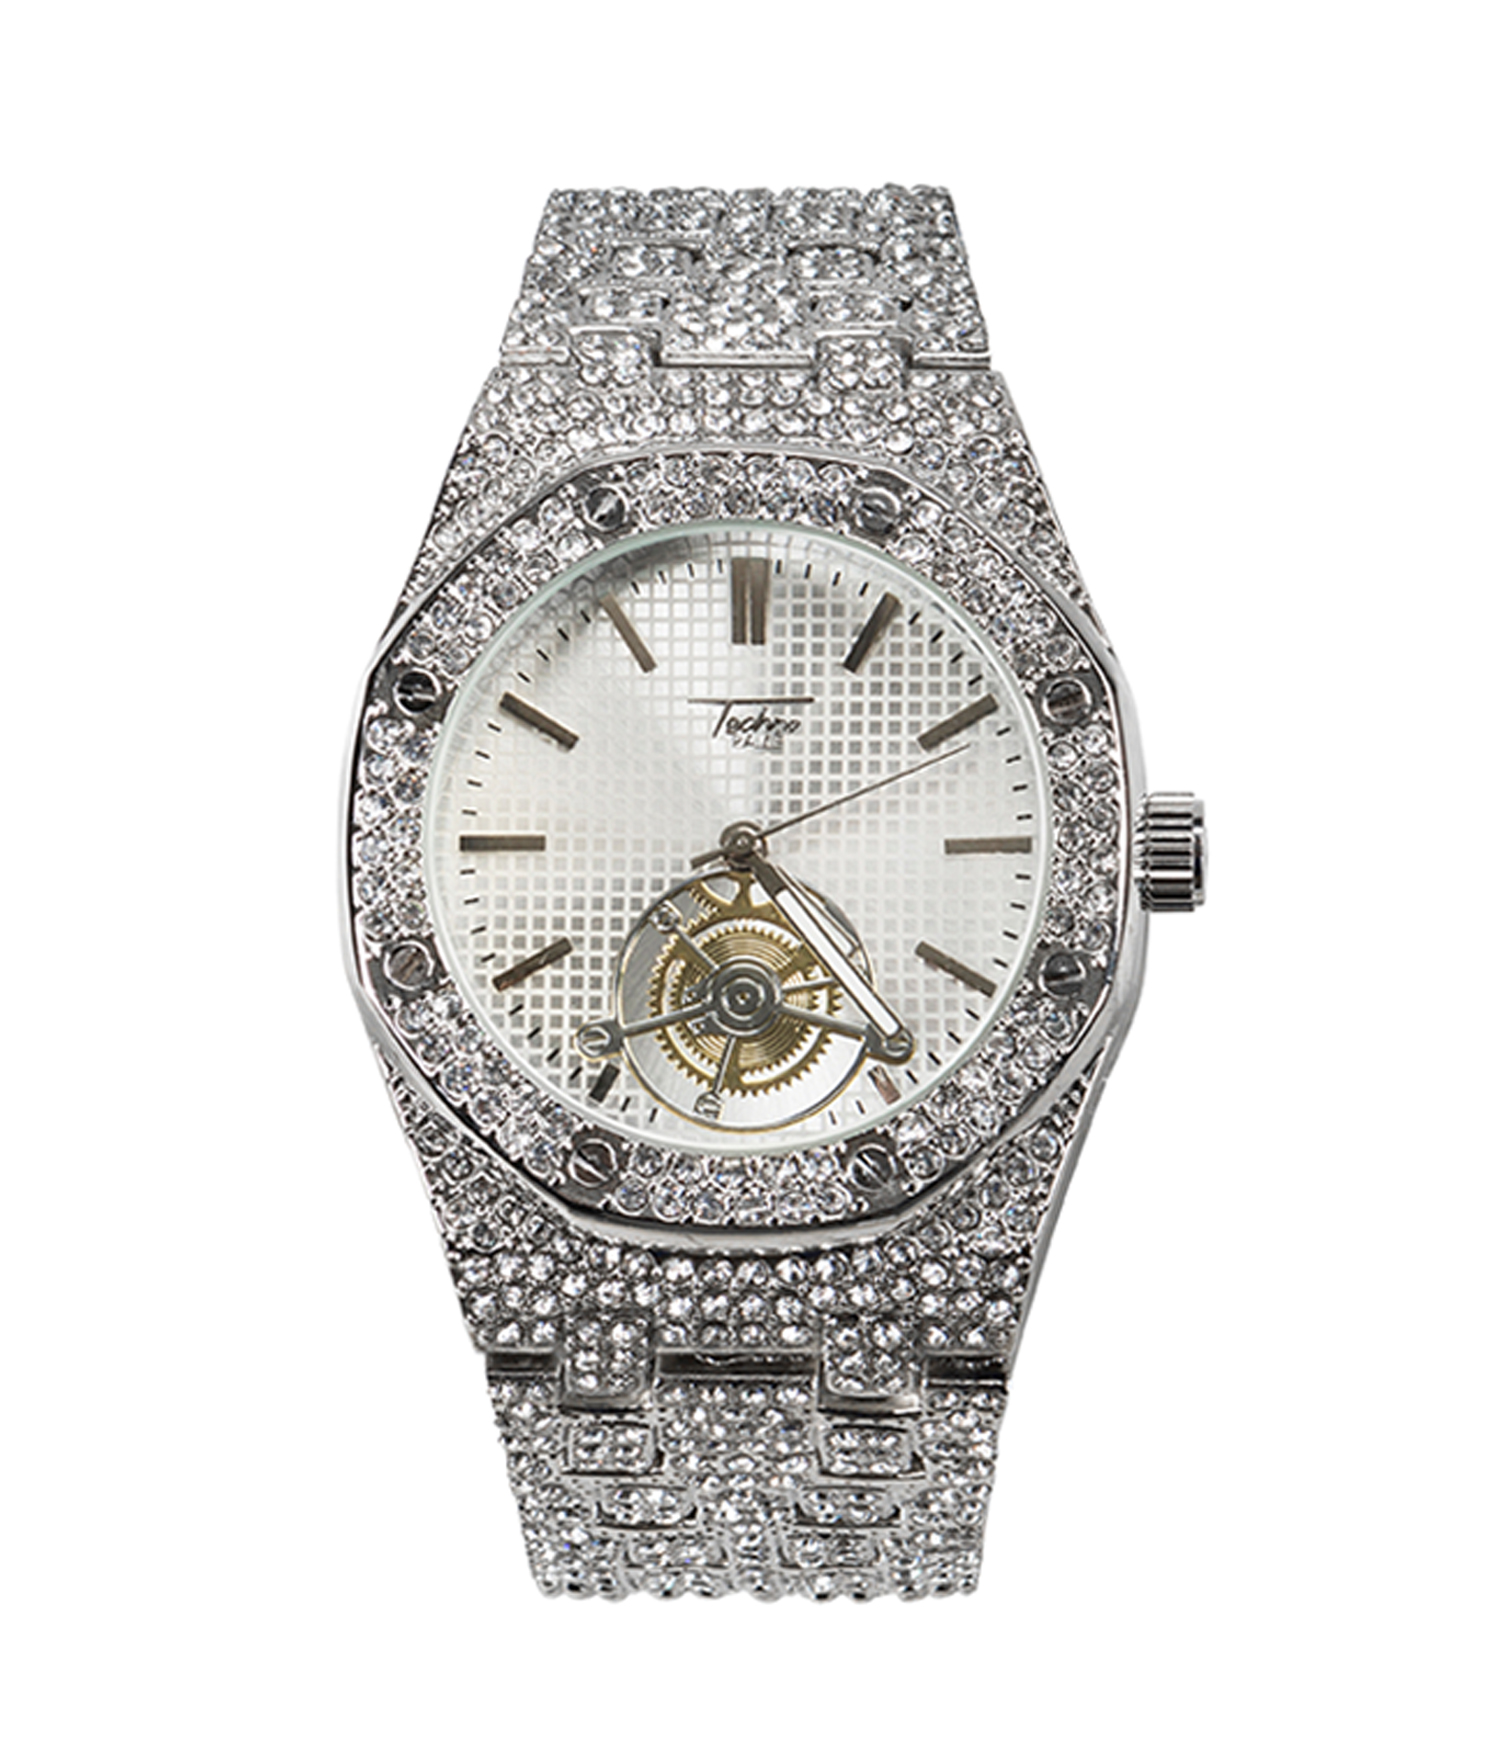 Techno Pave Mens Iced Out Bezel Silver Watch With Simulated Diamonds Silver Silver Walmart Com